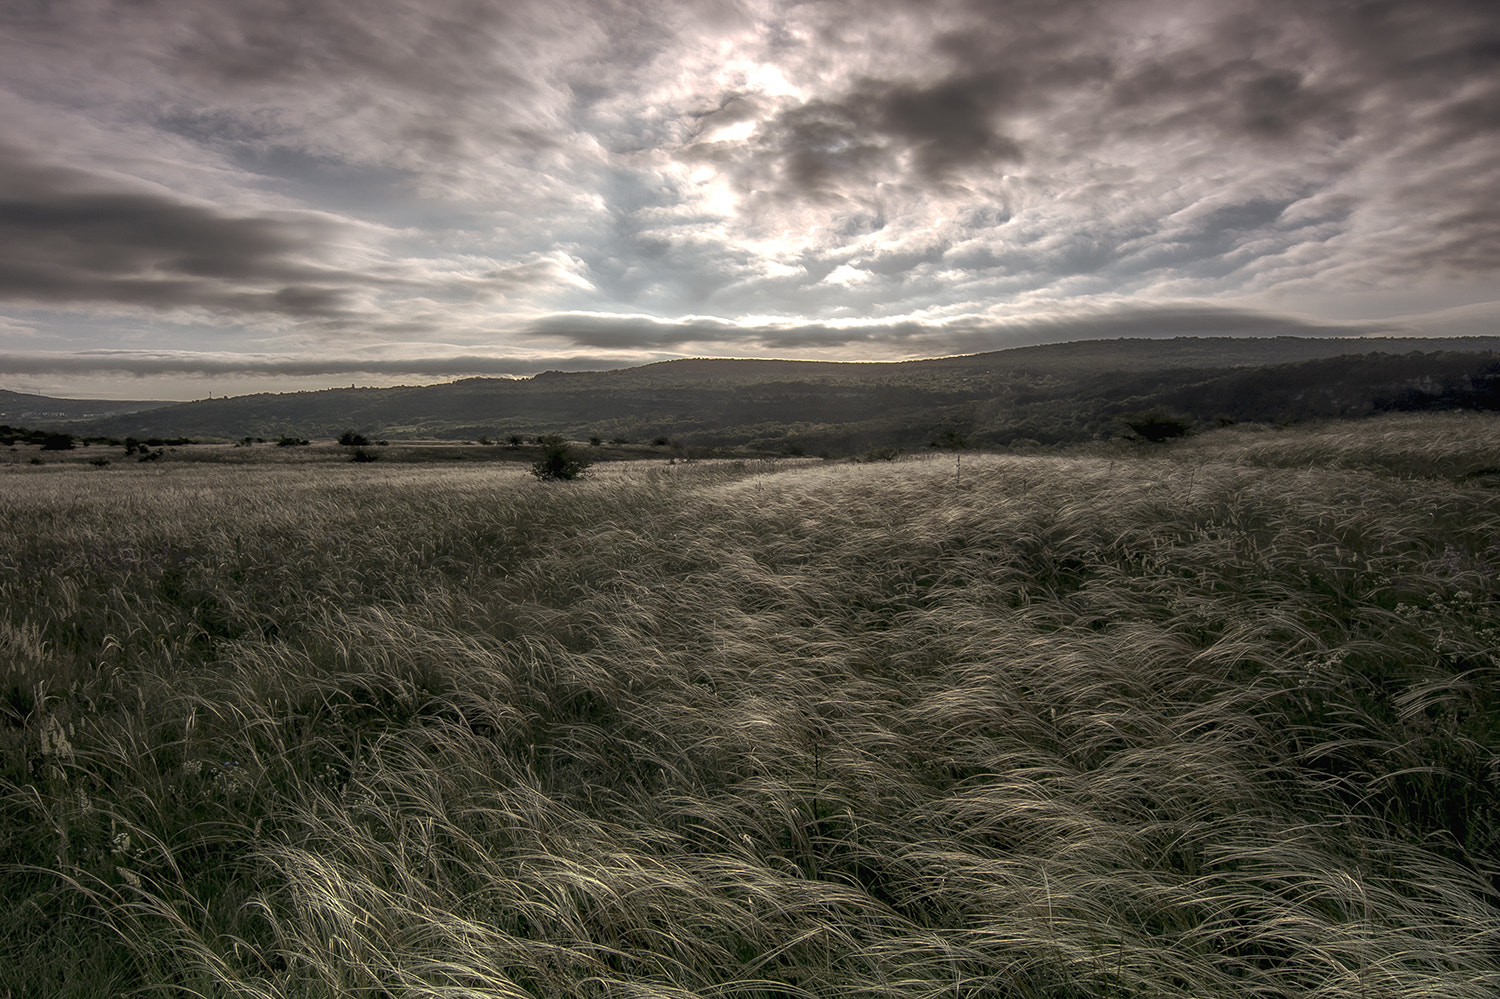 Photograph Rocking field by Andy 58 on 500px